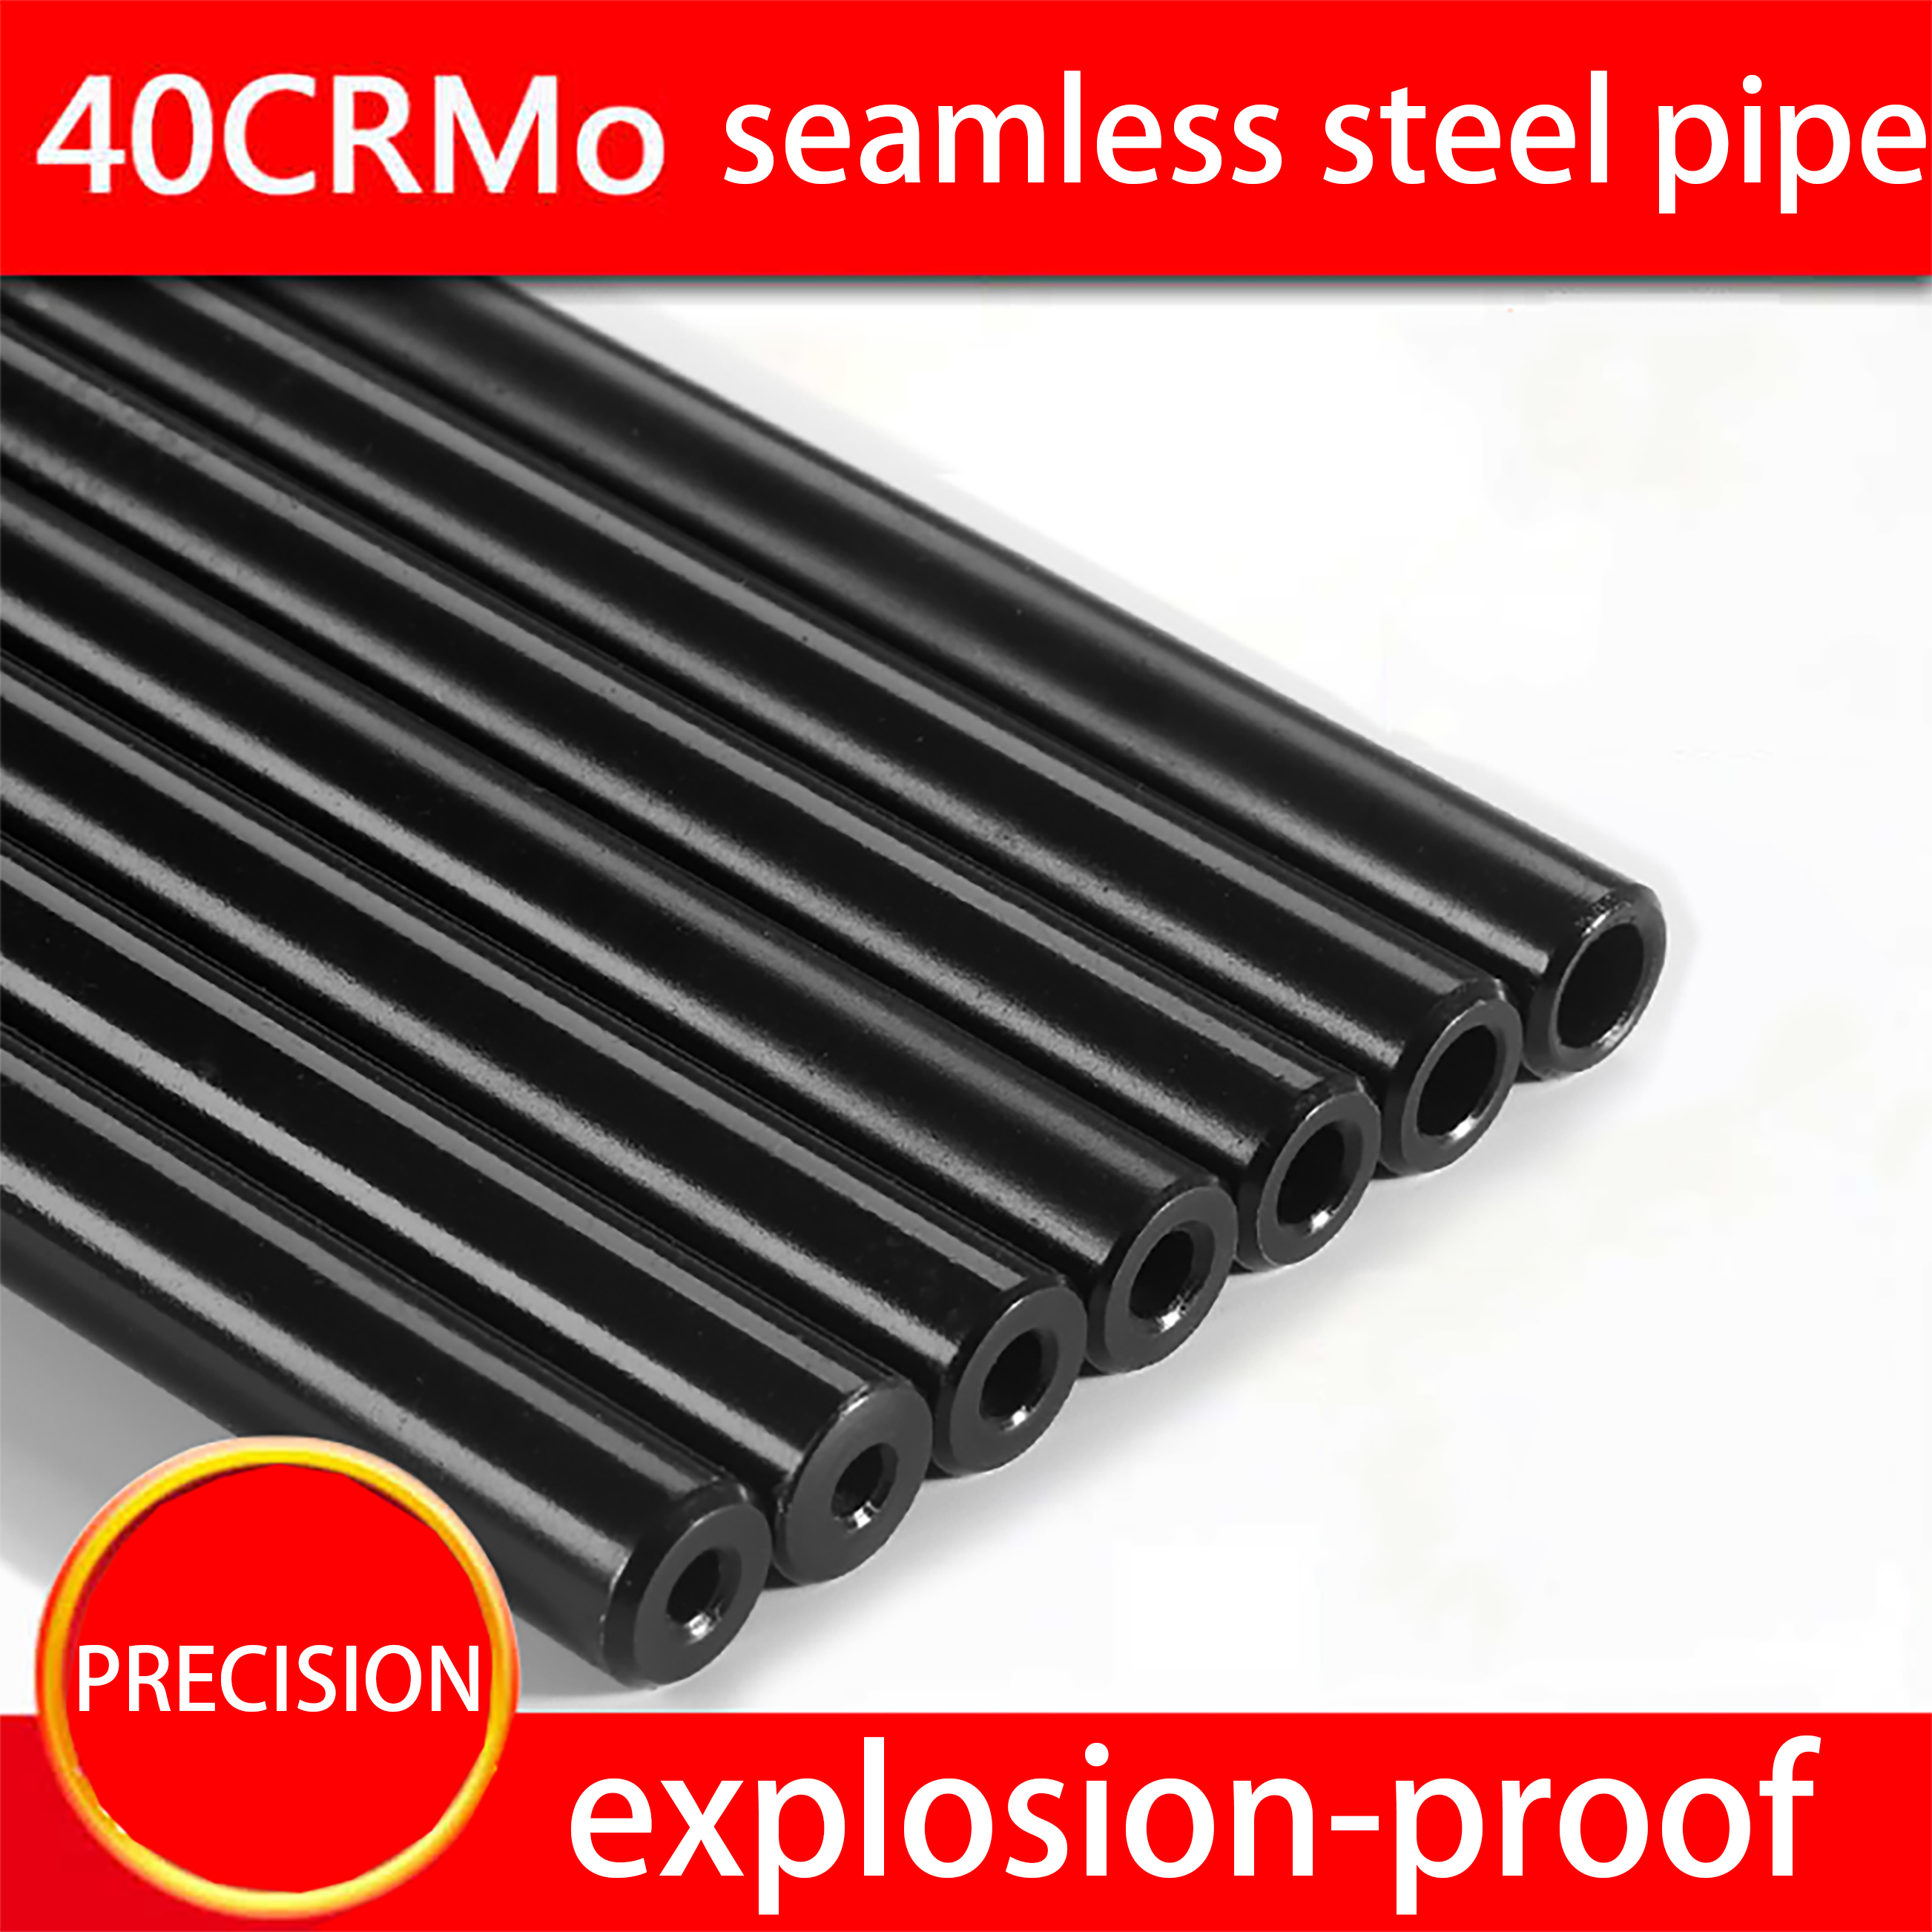 O/D 18mm  Explosion-proof Seamless Steel Pipe Hydraulic Boilerfor Home DIYprint Black